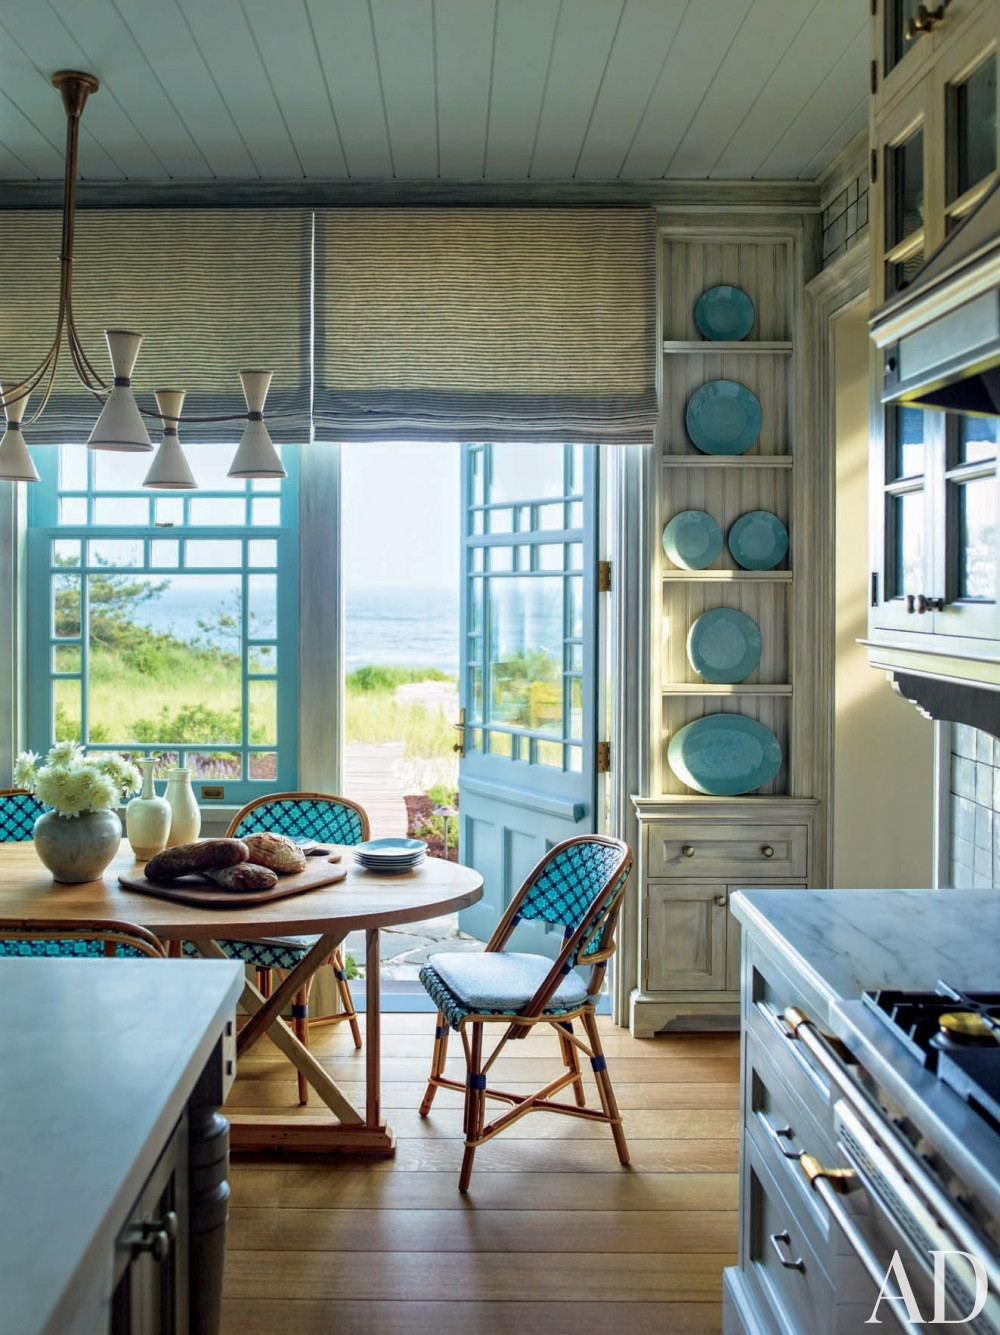 Contemporary Kitchen by S.R. Gambrel Inc. and Robert A.M. Stern Architects in East Quogue, New York